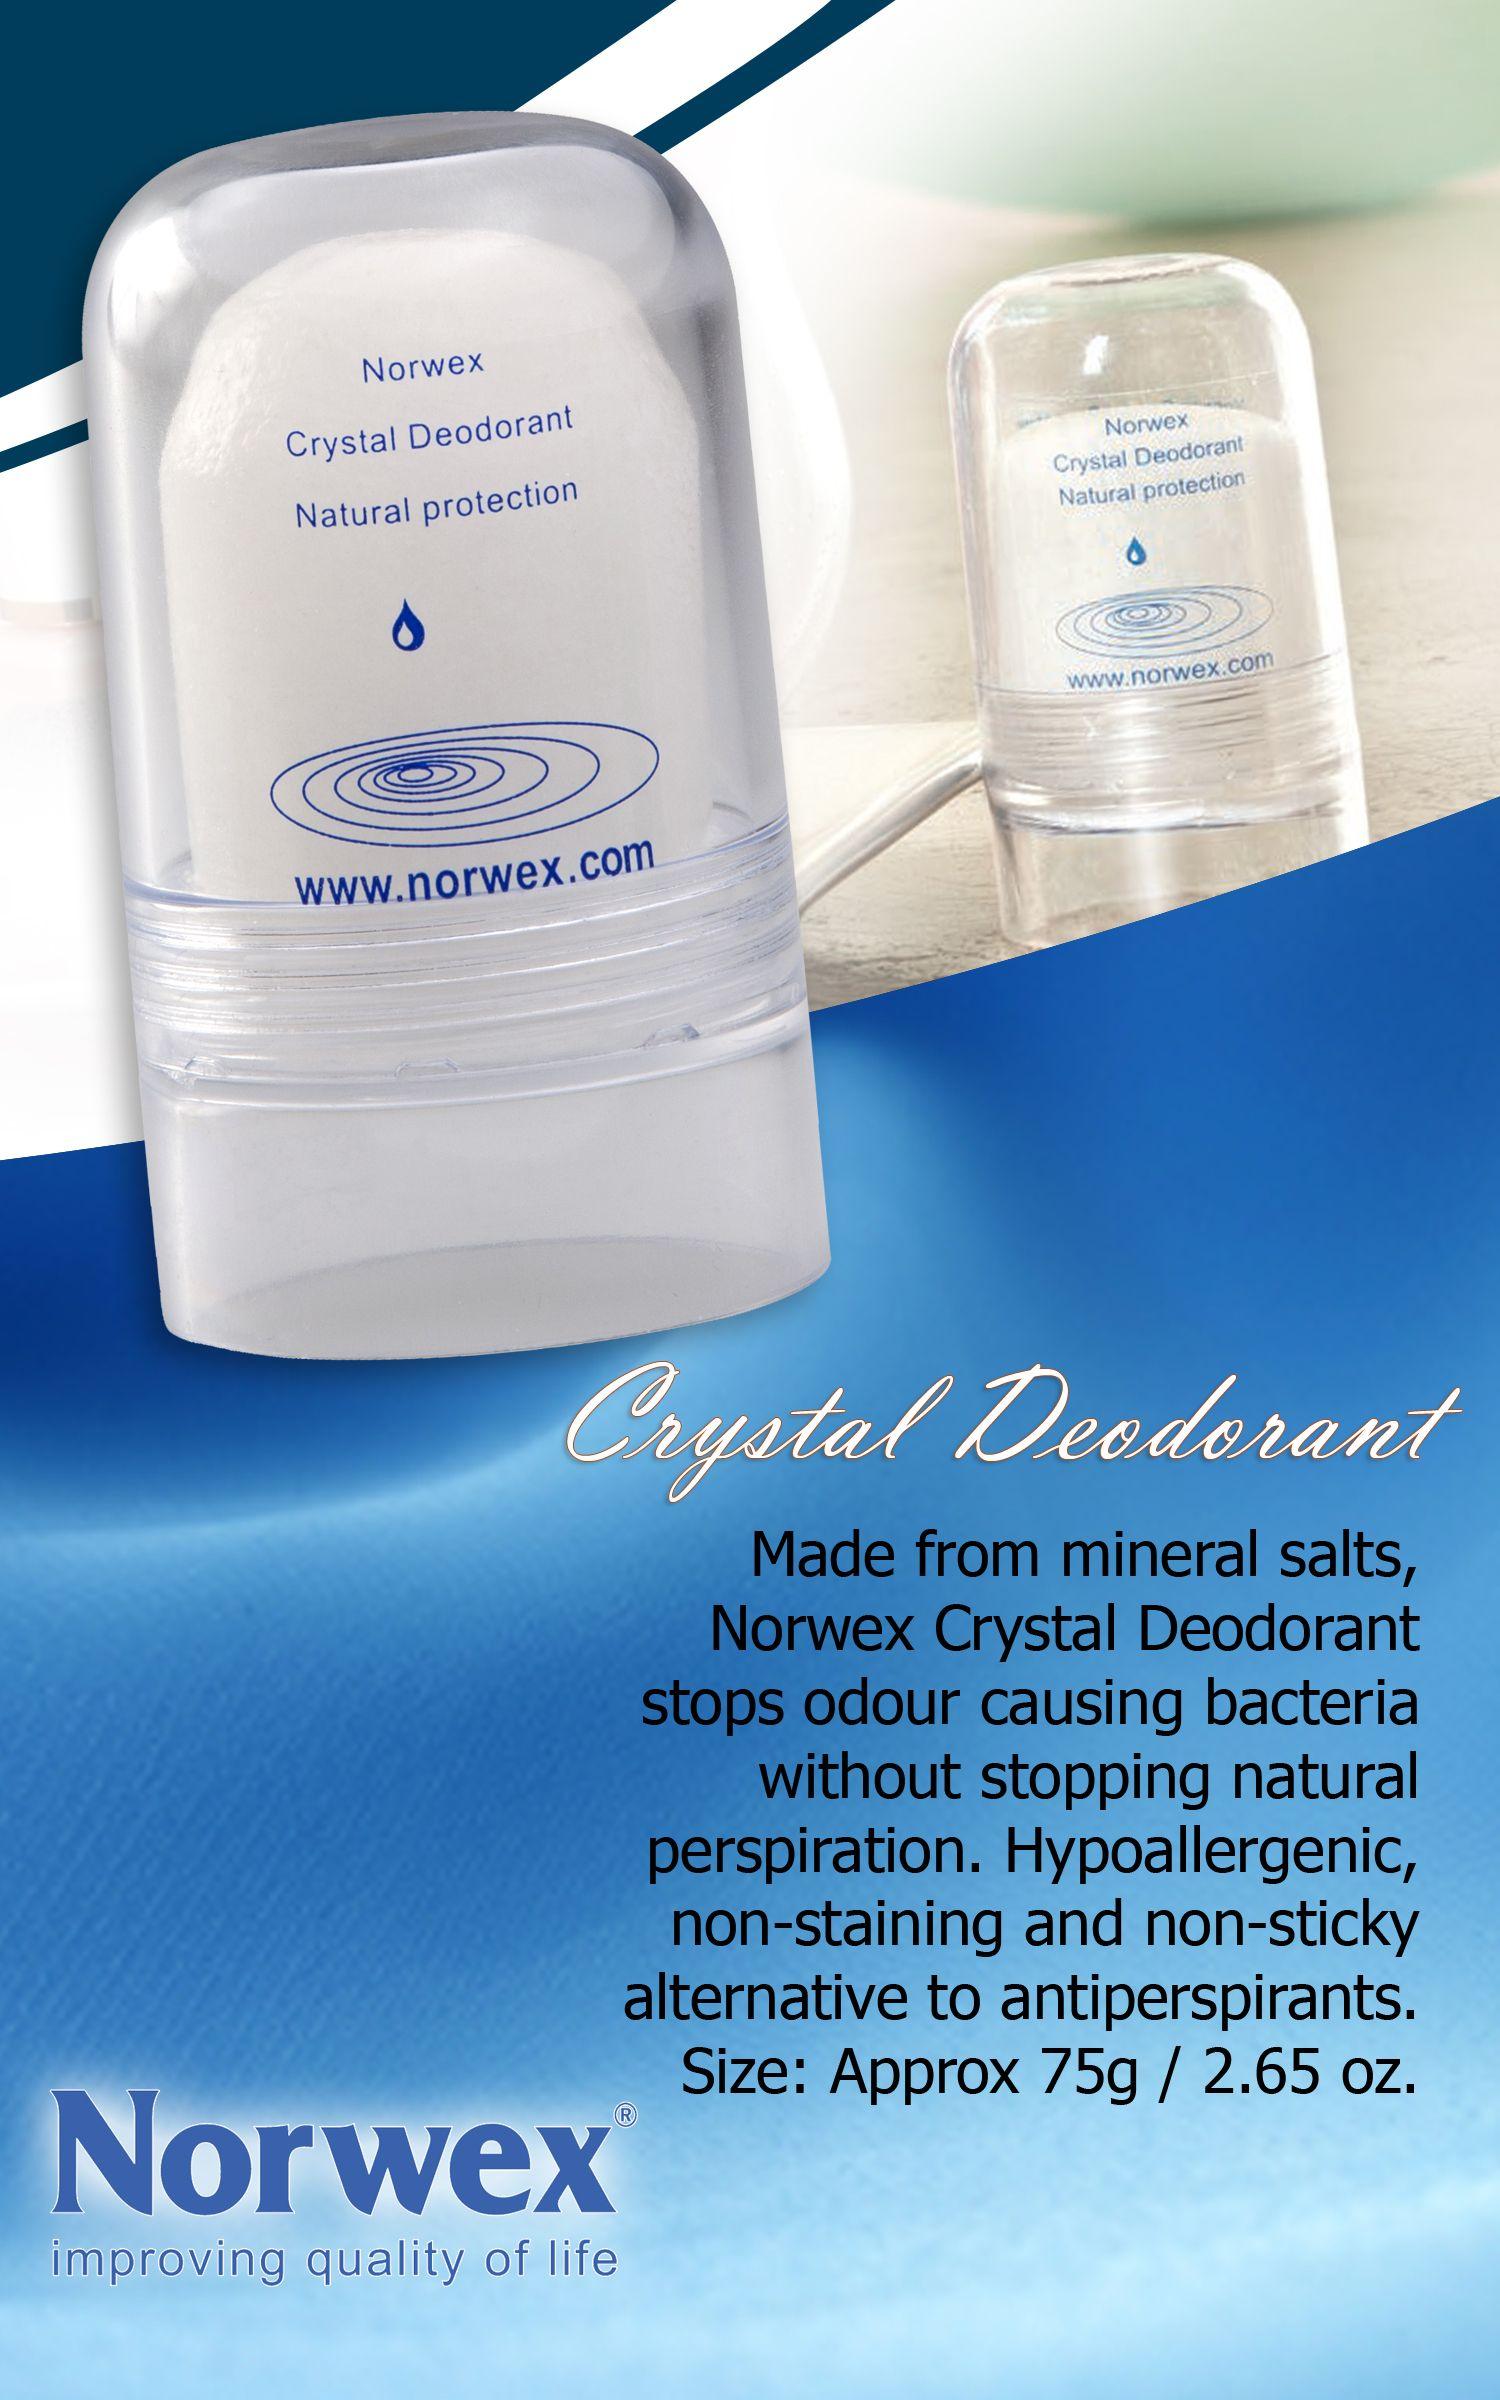 Norwex Deodorant Stone Is Made From Crystallized Natural